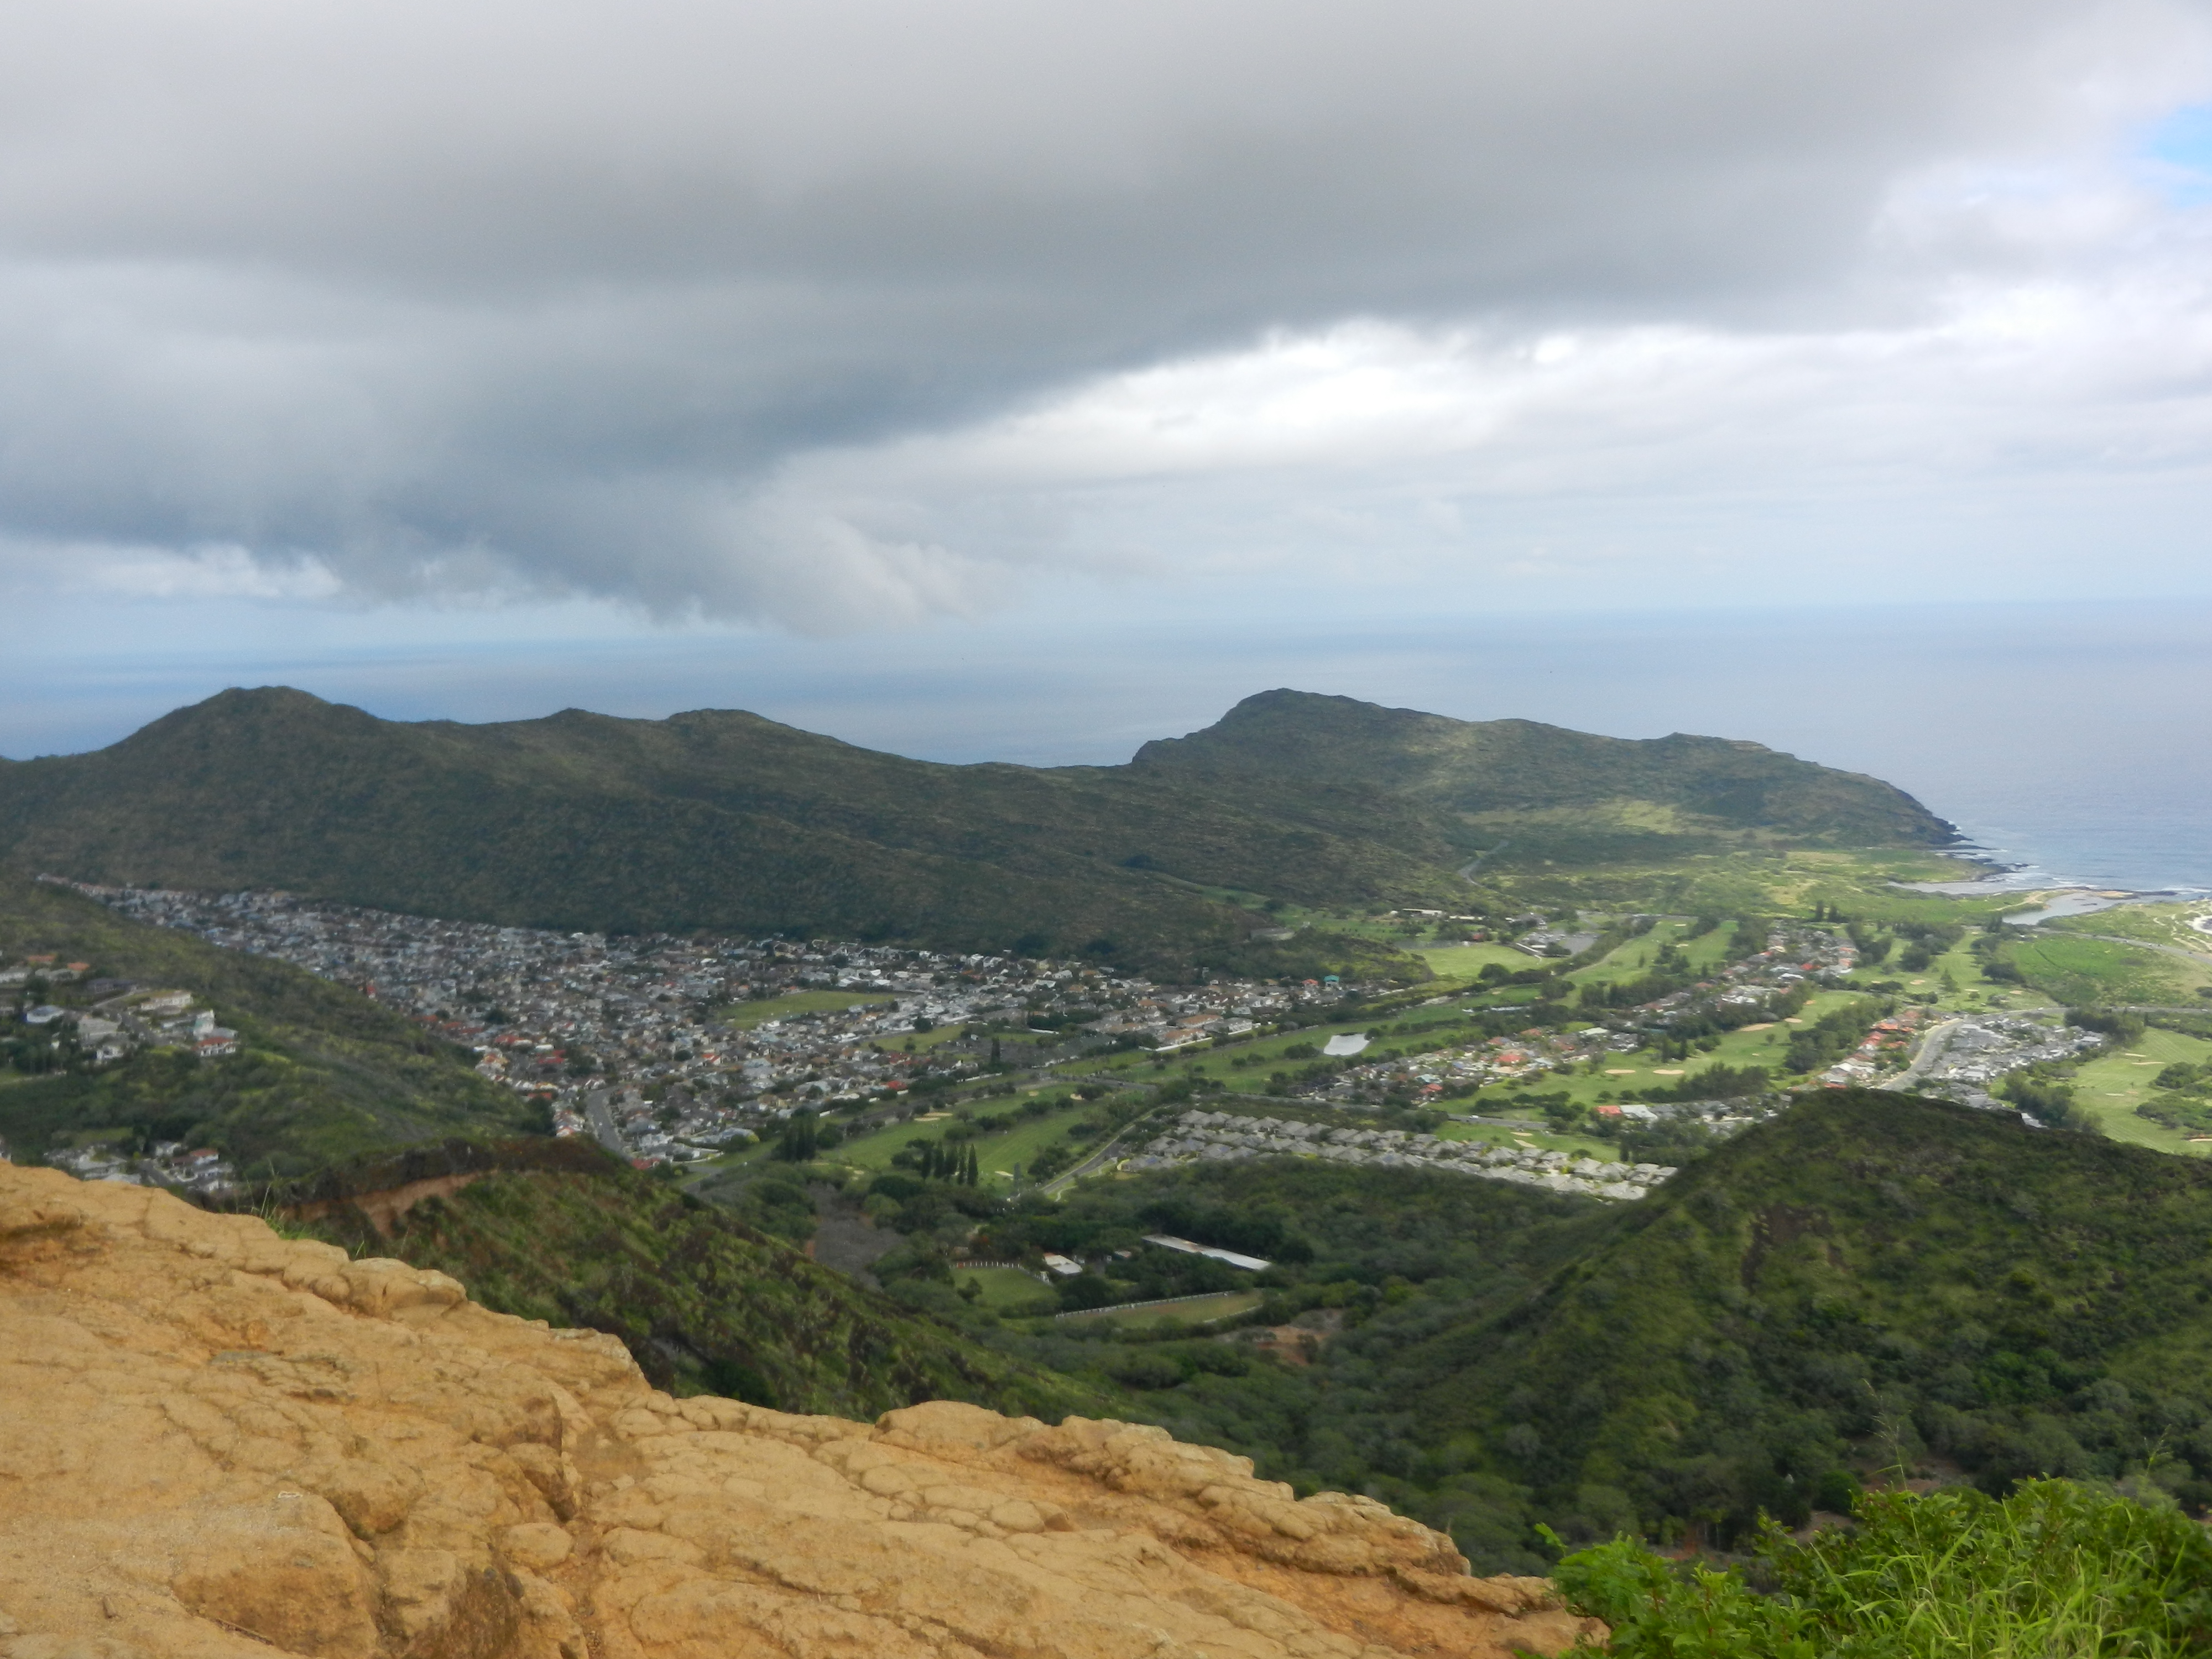 Sprawling view of the island of Oahu from the top of Koko Head.